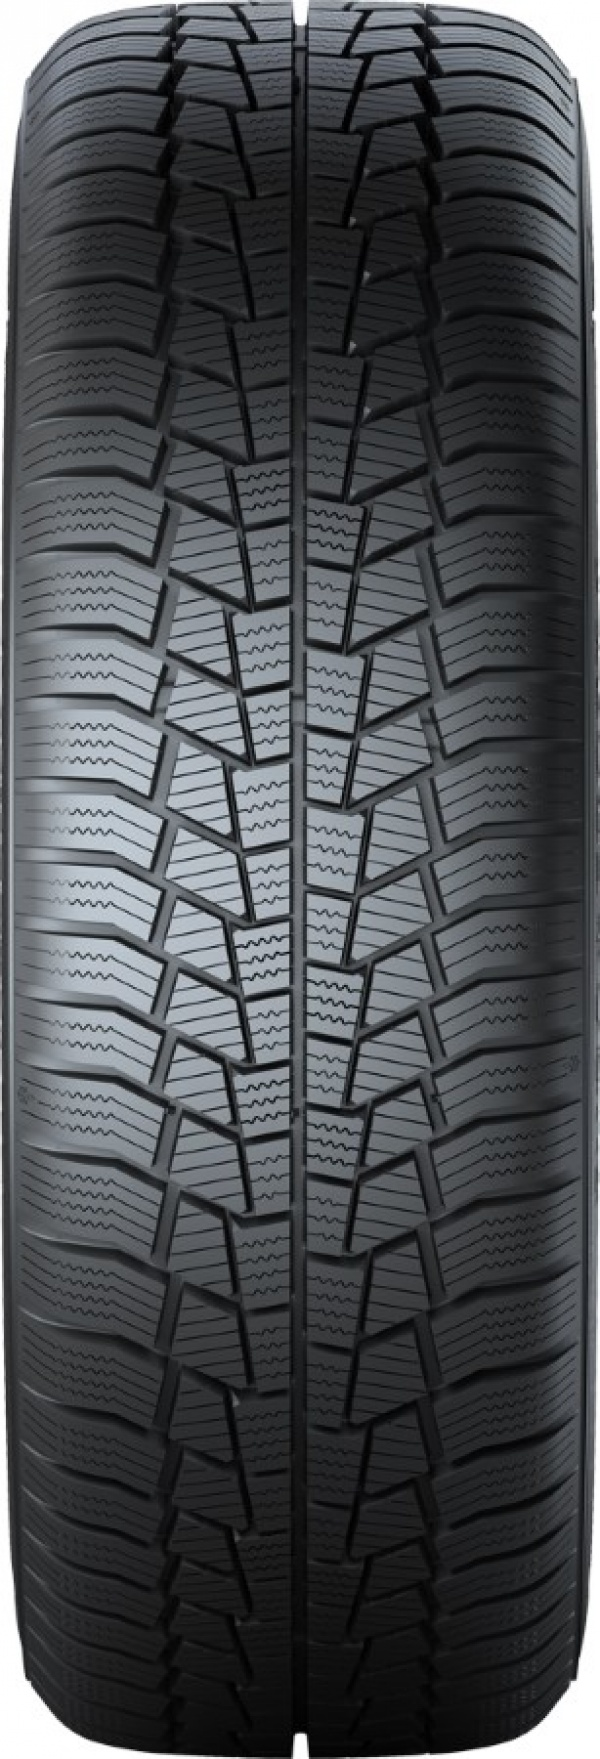 Gislaved Euro Frost 6 185/65 R15 92T  не шип